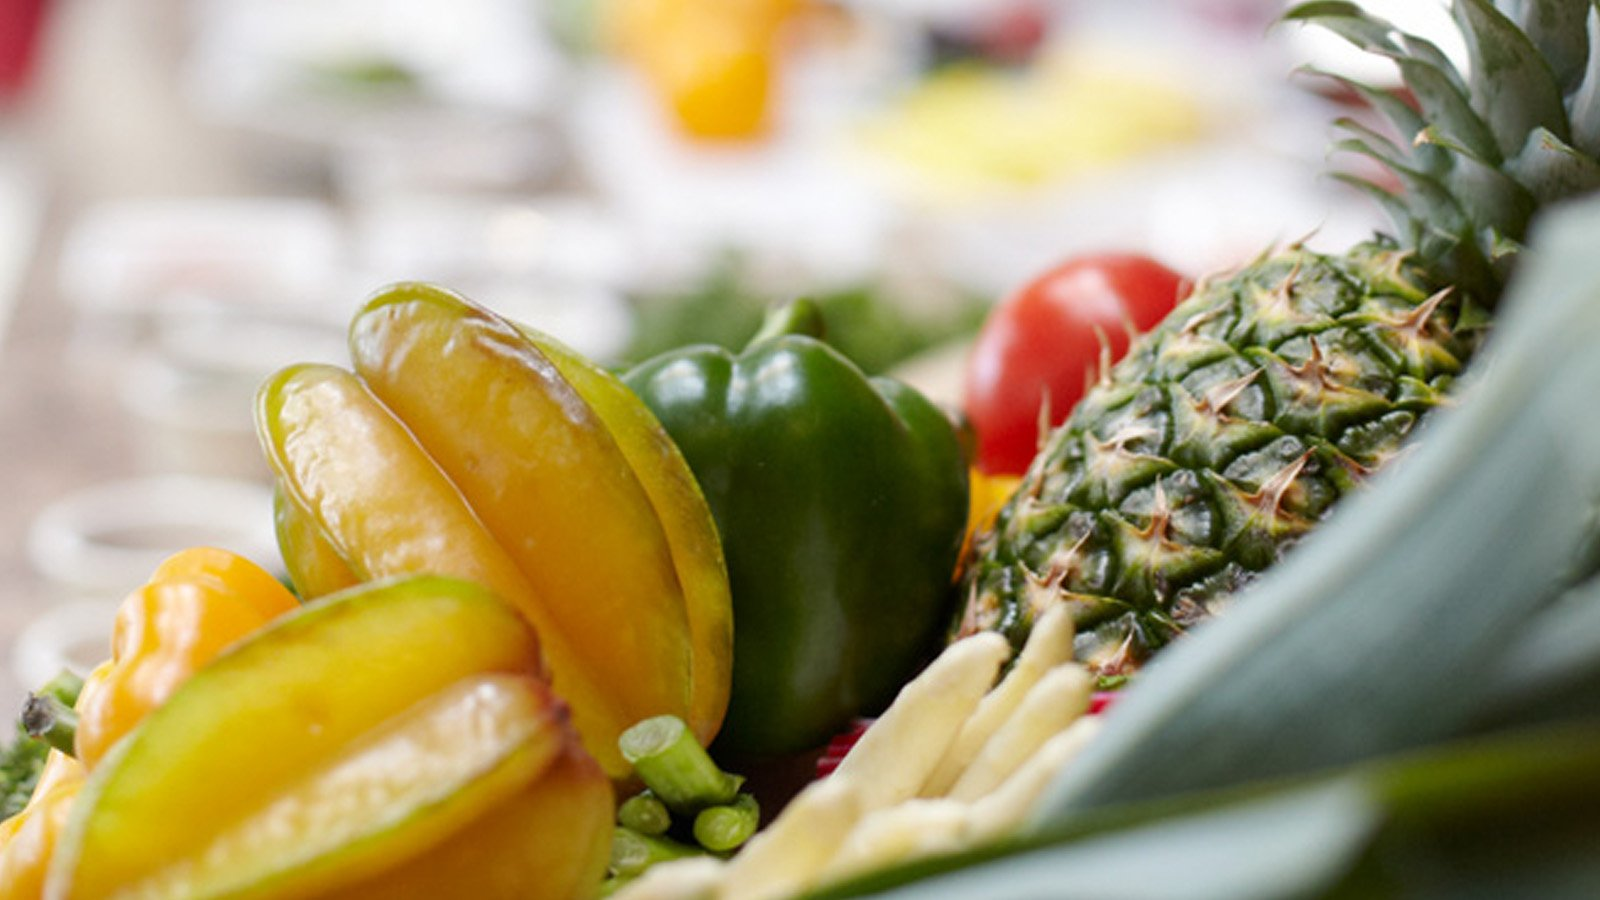 fresh fruit and vegetables in a dish